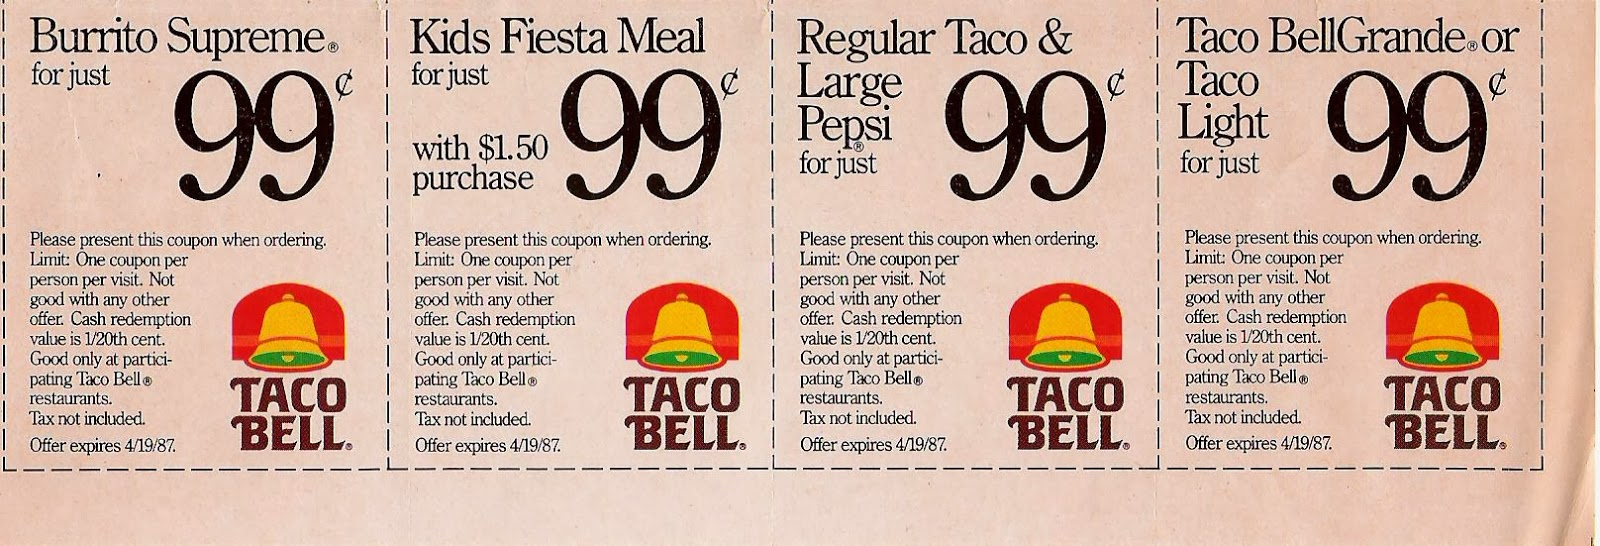 photo relating to Taco Bell Printable Coupons known as Taco bell discount coupons 2018 printable - Easiest suv rent specials 2018